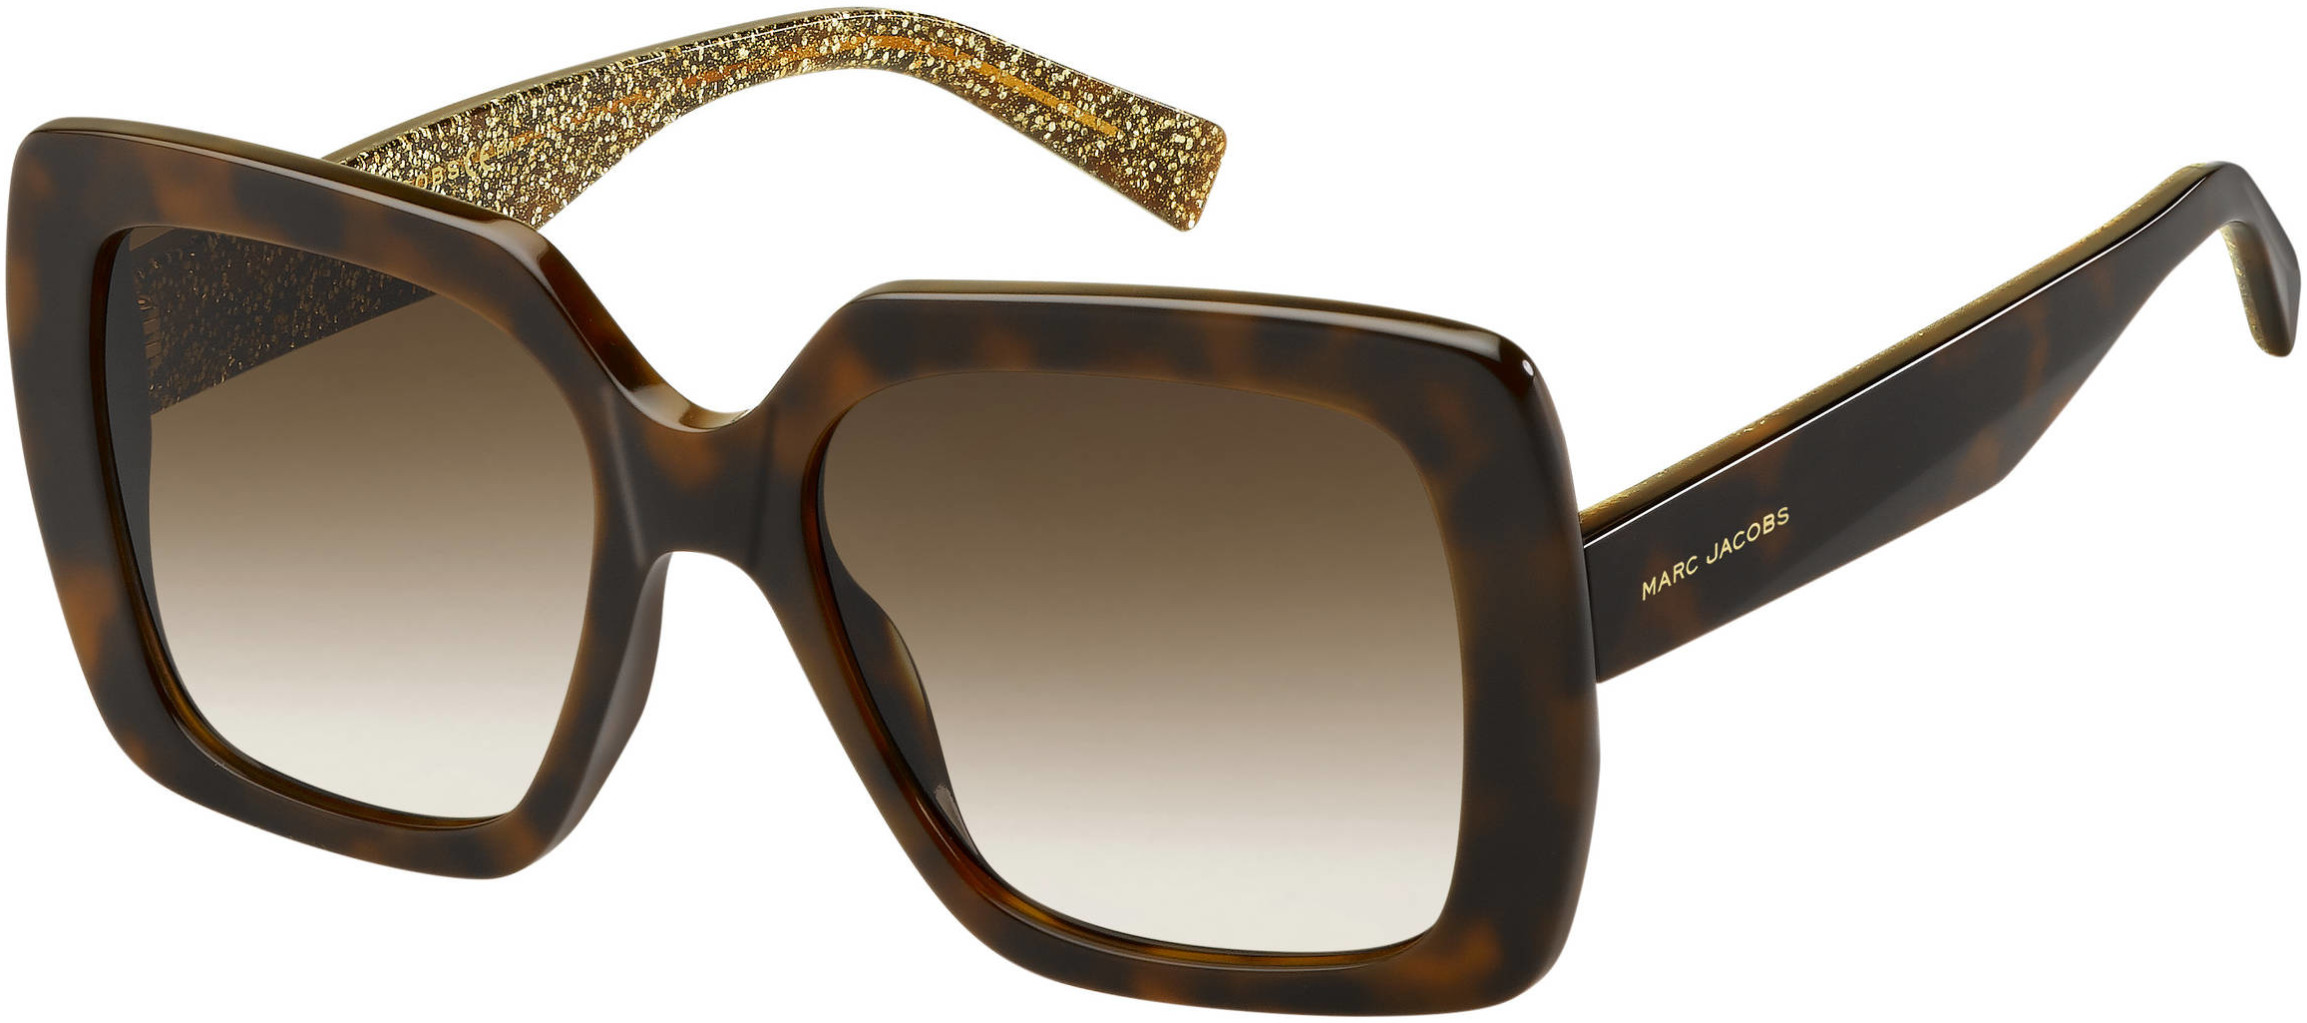 Marc Jacobs square oversized